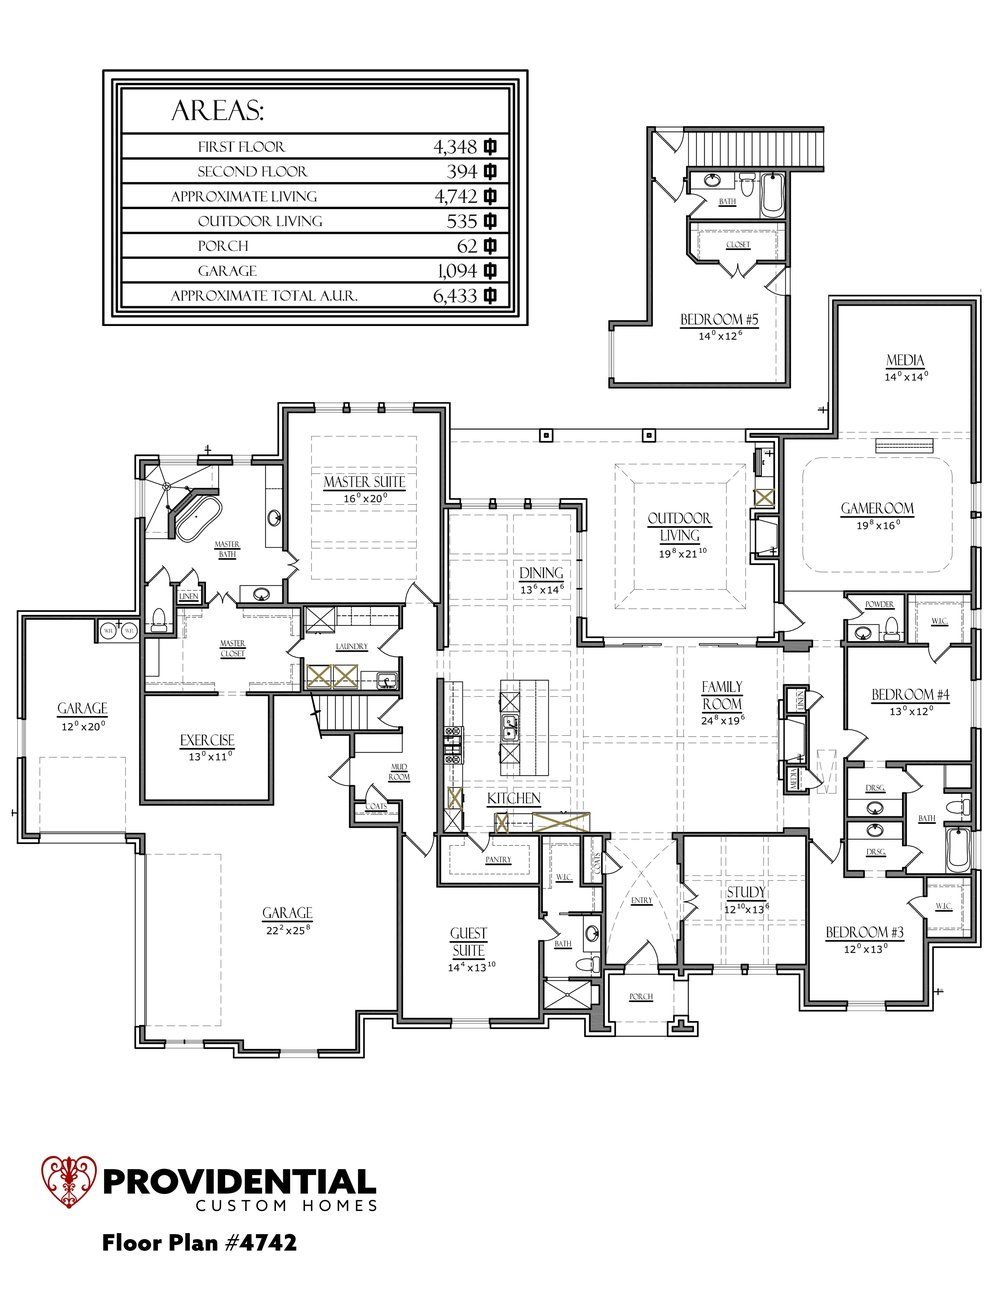 The FLOOR PLAN #4742.jpg